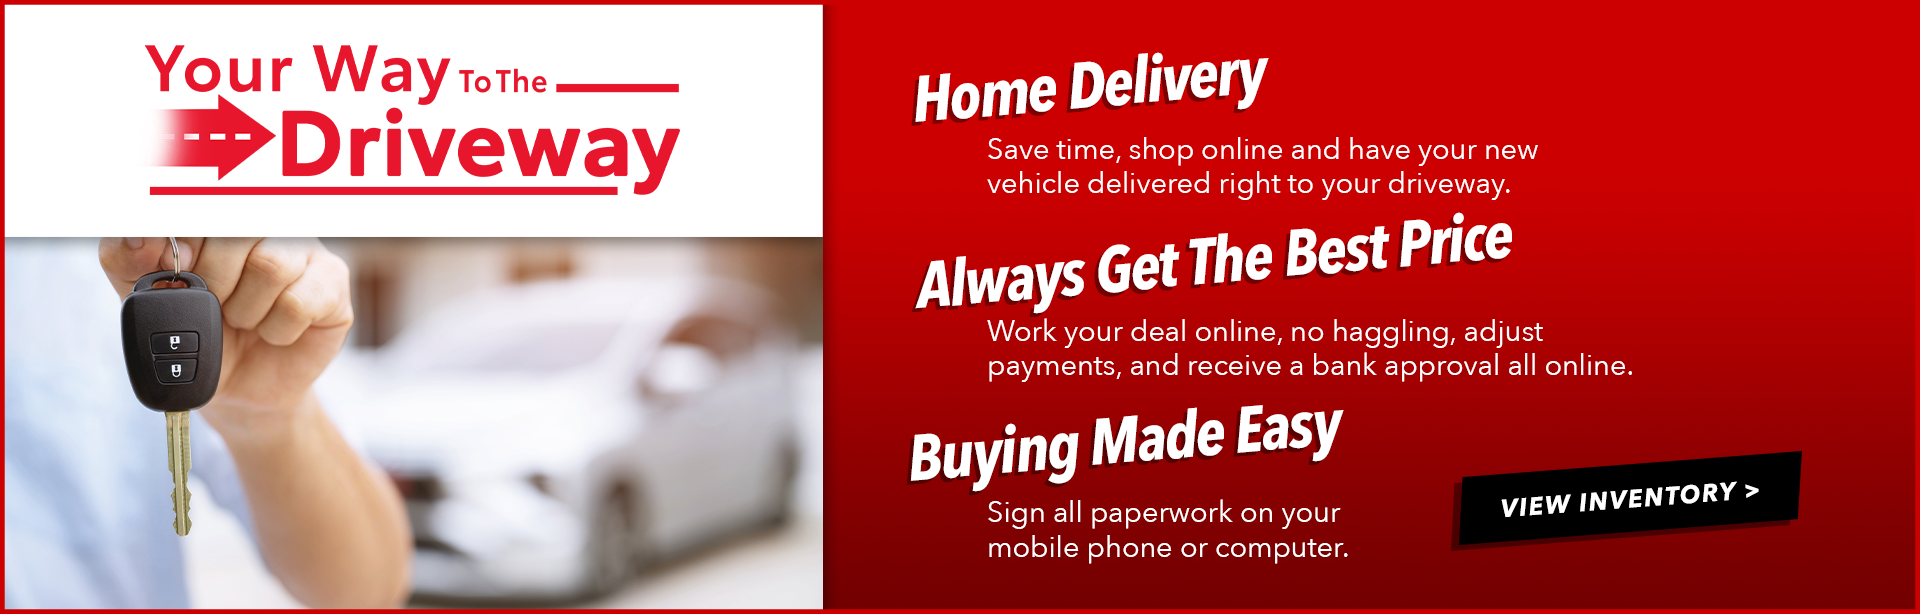 WCToyota_HPBanner_1920x614_HomeDelivery_July2020